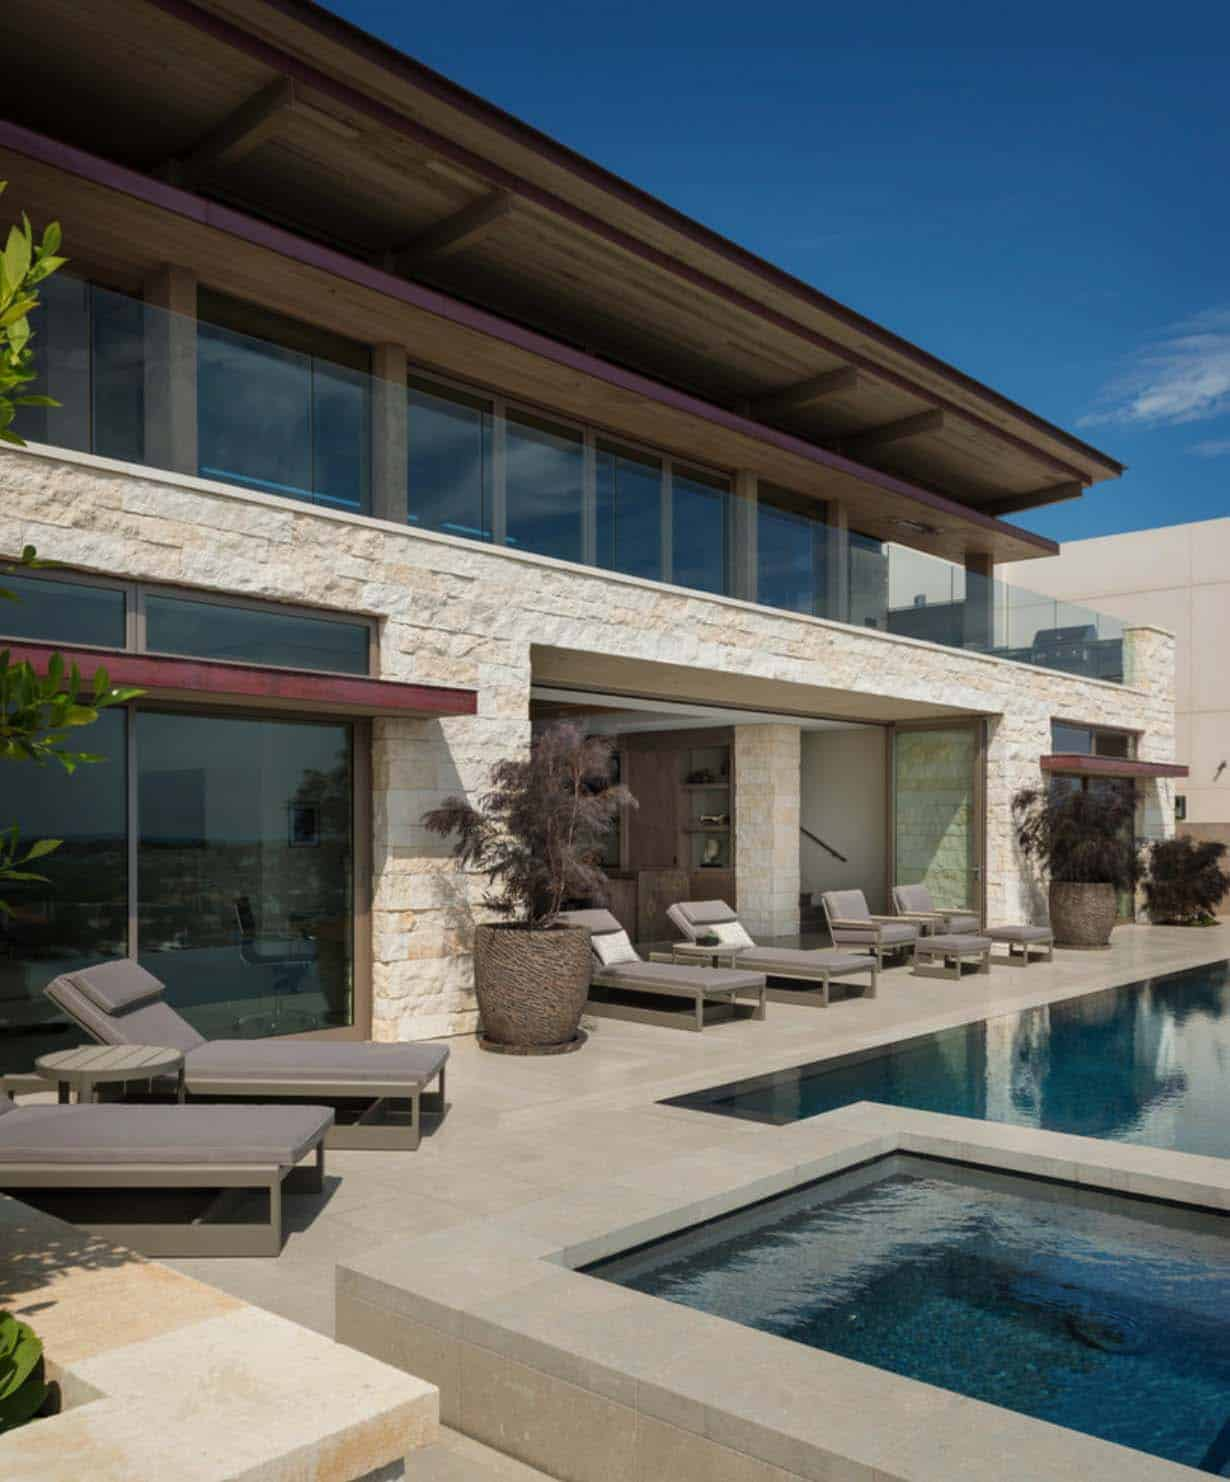 Newport Bluffs Apartments: Contemporary Blufftop Dwelling Overlooking Newport Harbor